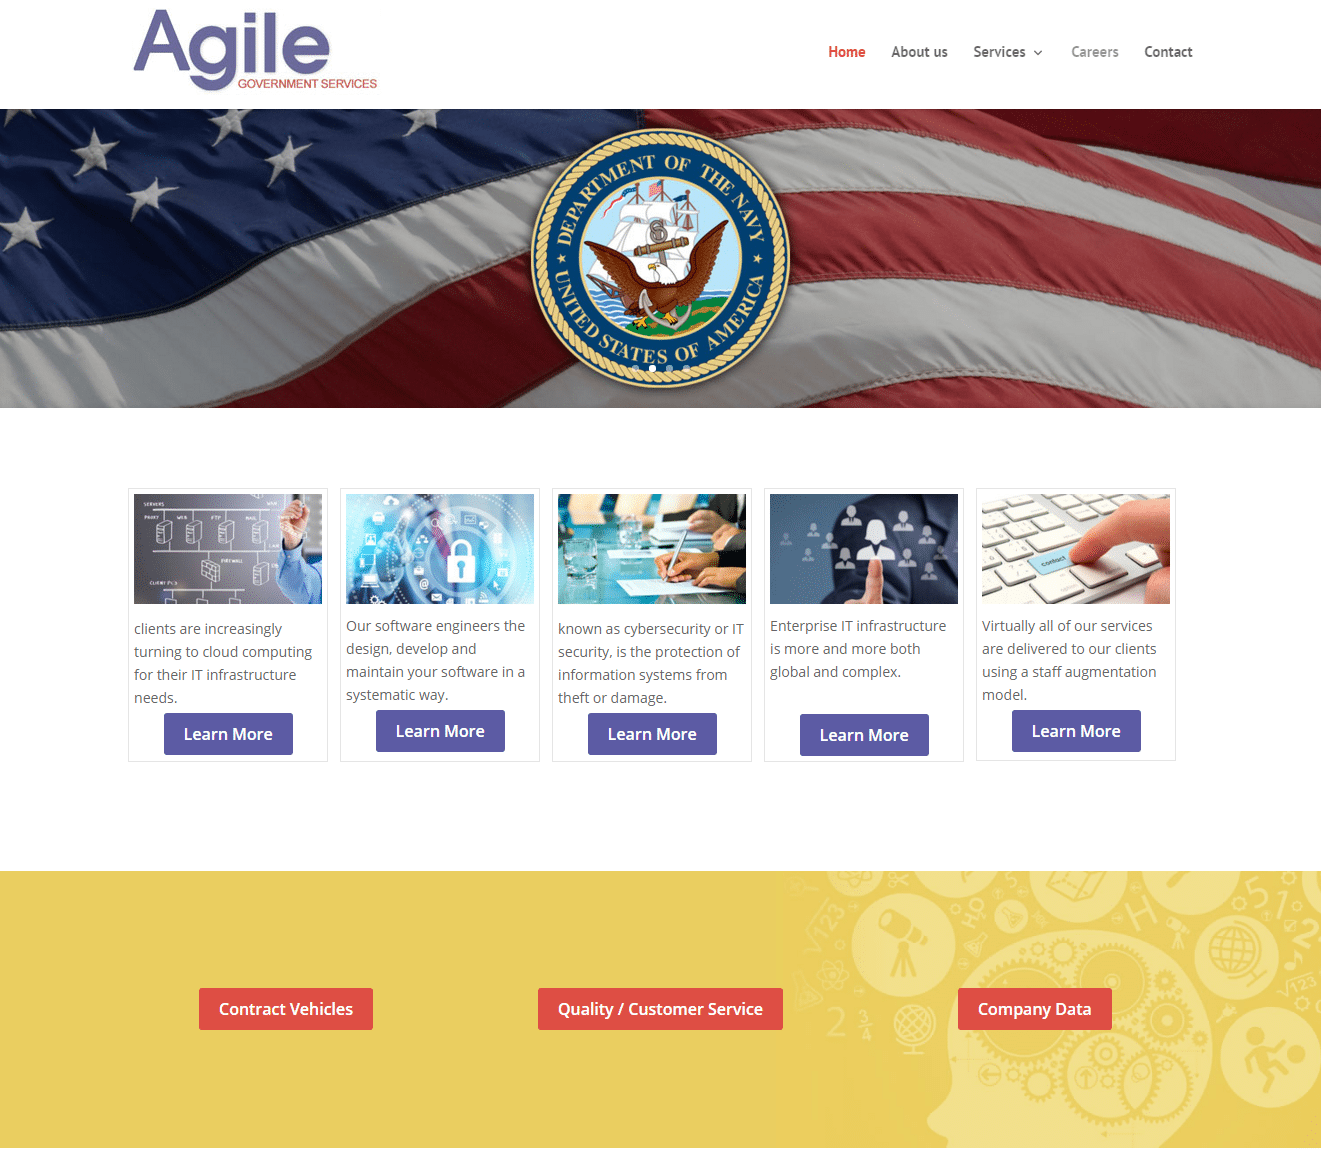 Agile Government Services Screenshot